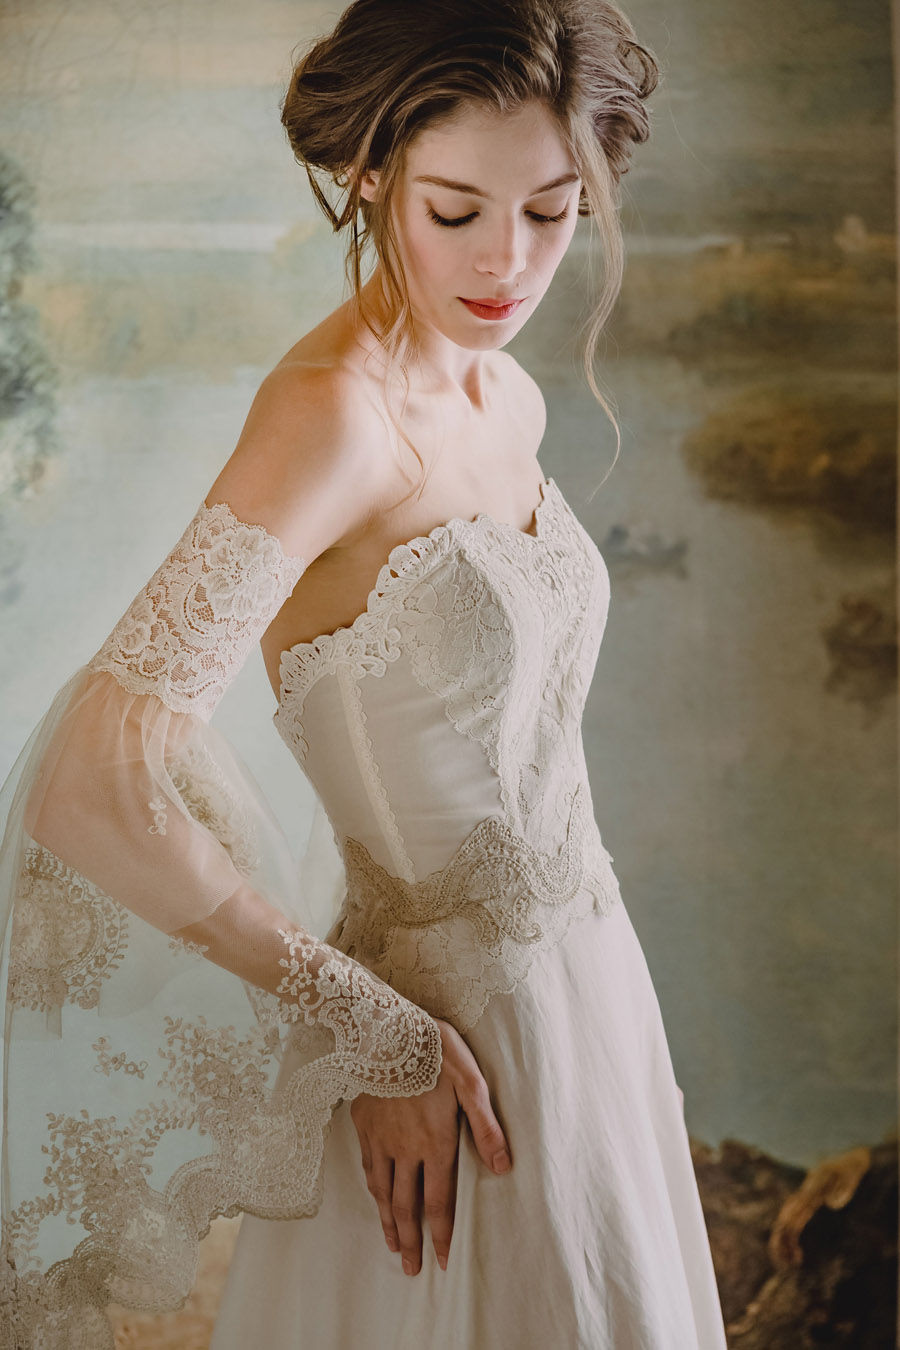 Claire Pettibone 2020 wedding dress ideas (12)